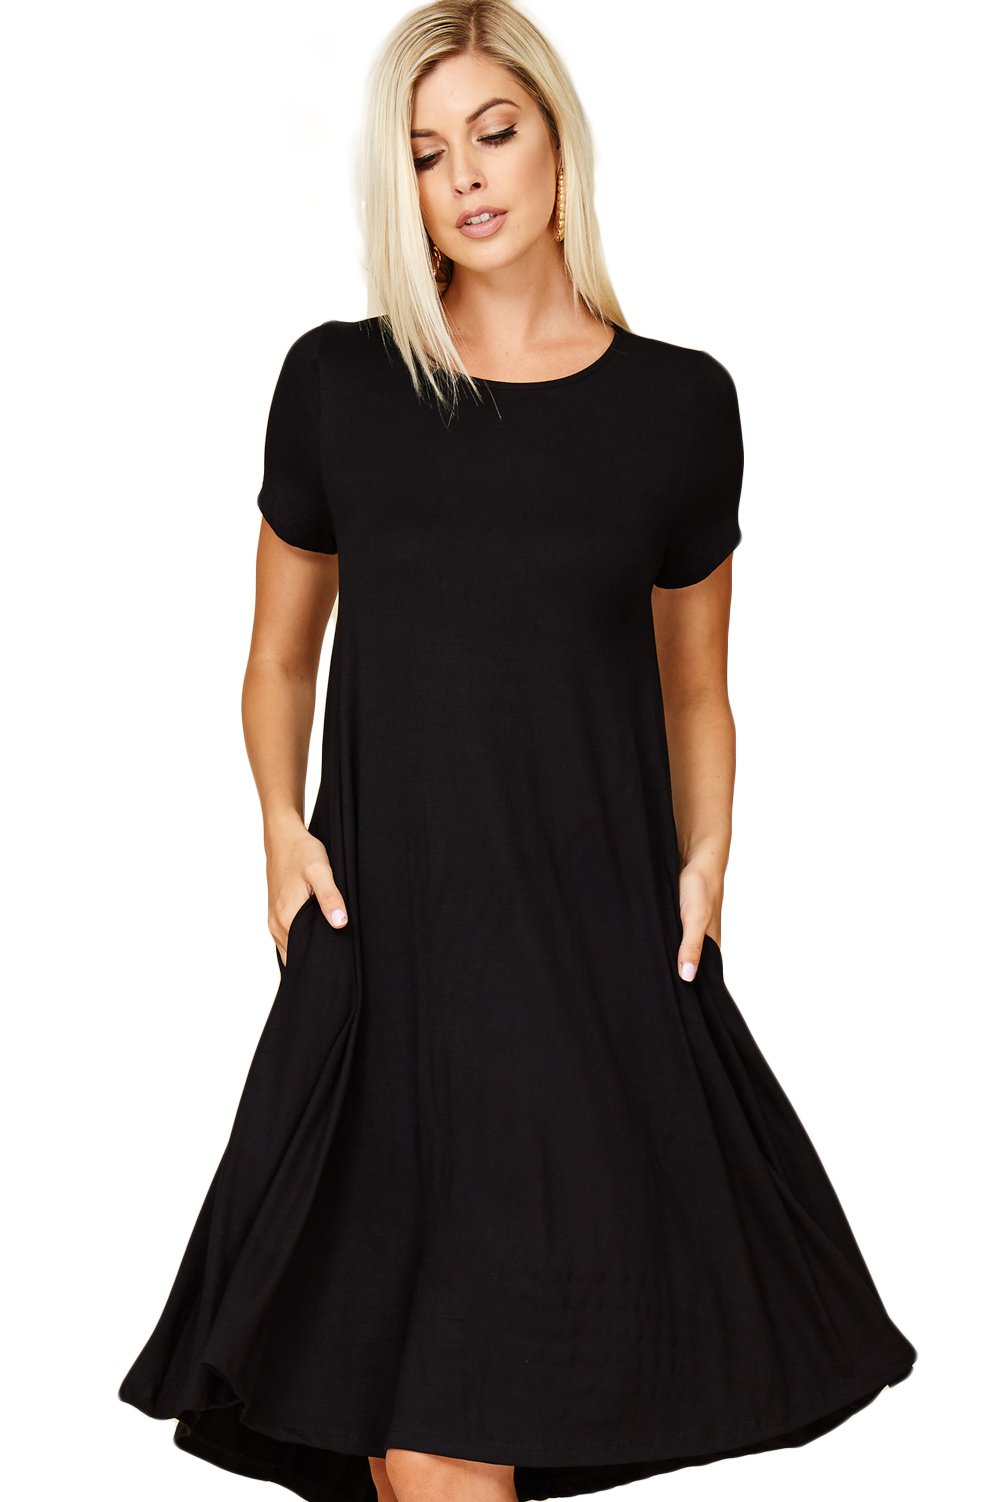 Annabelle Women's Comfy Short Sleeve Scoop Neck Swing Dresses with Pockets 3X-Large Black D5213X